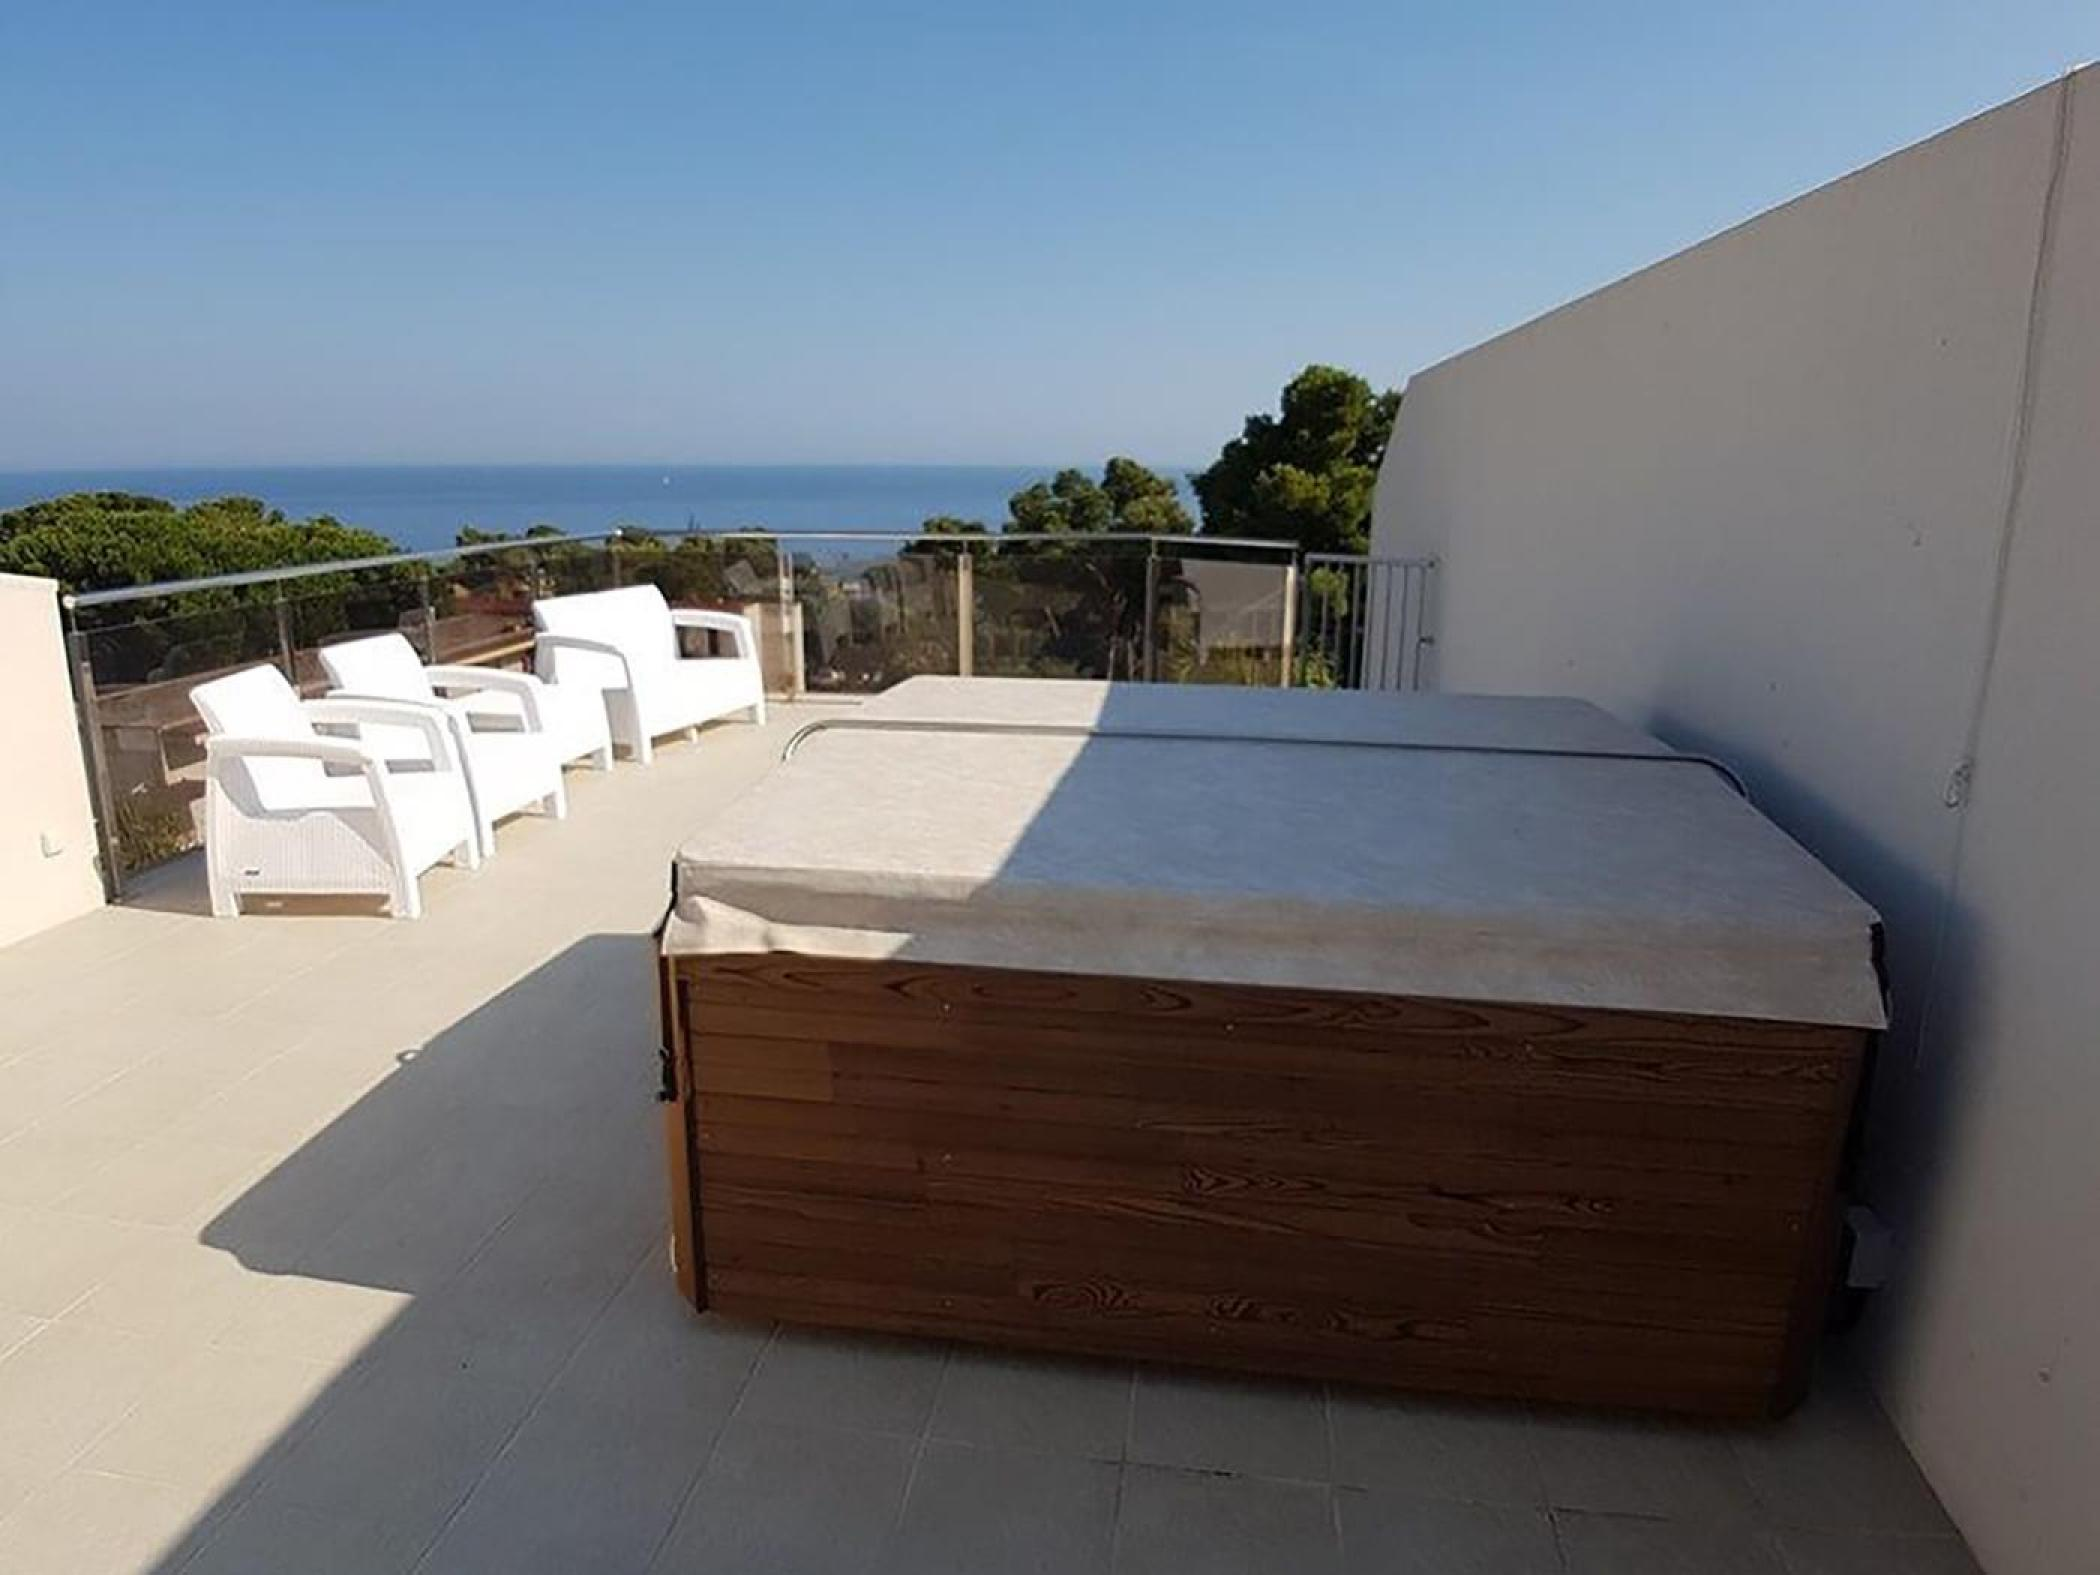 Rent Villa with Swimming pool in Platja d'Aro - Calma Holiday Villas jacuzzi 12 - 23